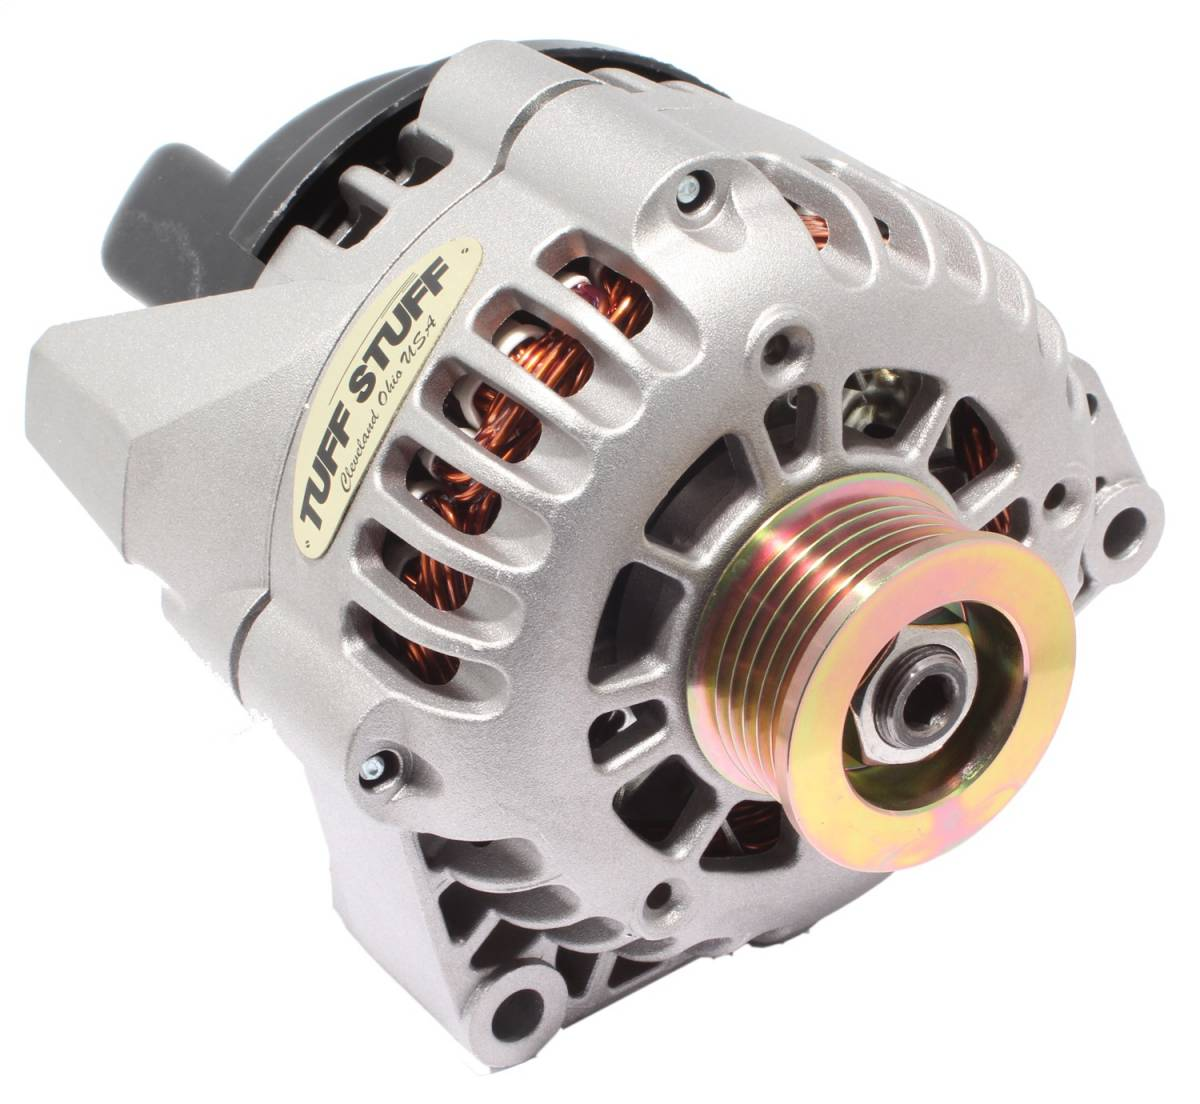 Tuff Stuff Performance - Alternator 125 AMP 1-Wire Or OEM Wire 6 Groove Pulley LS1 Engine Only Factory Cast PLUS+ 8242